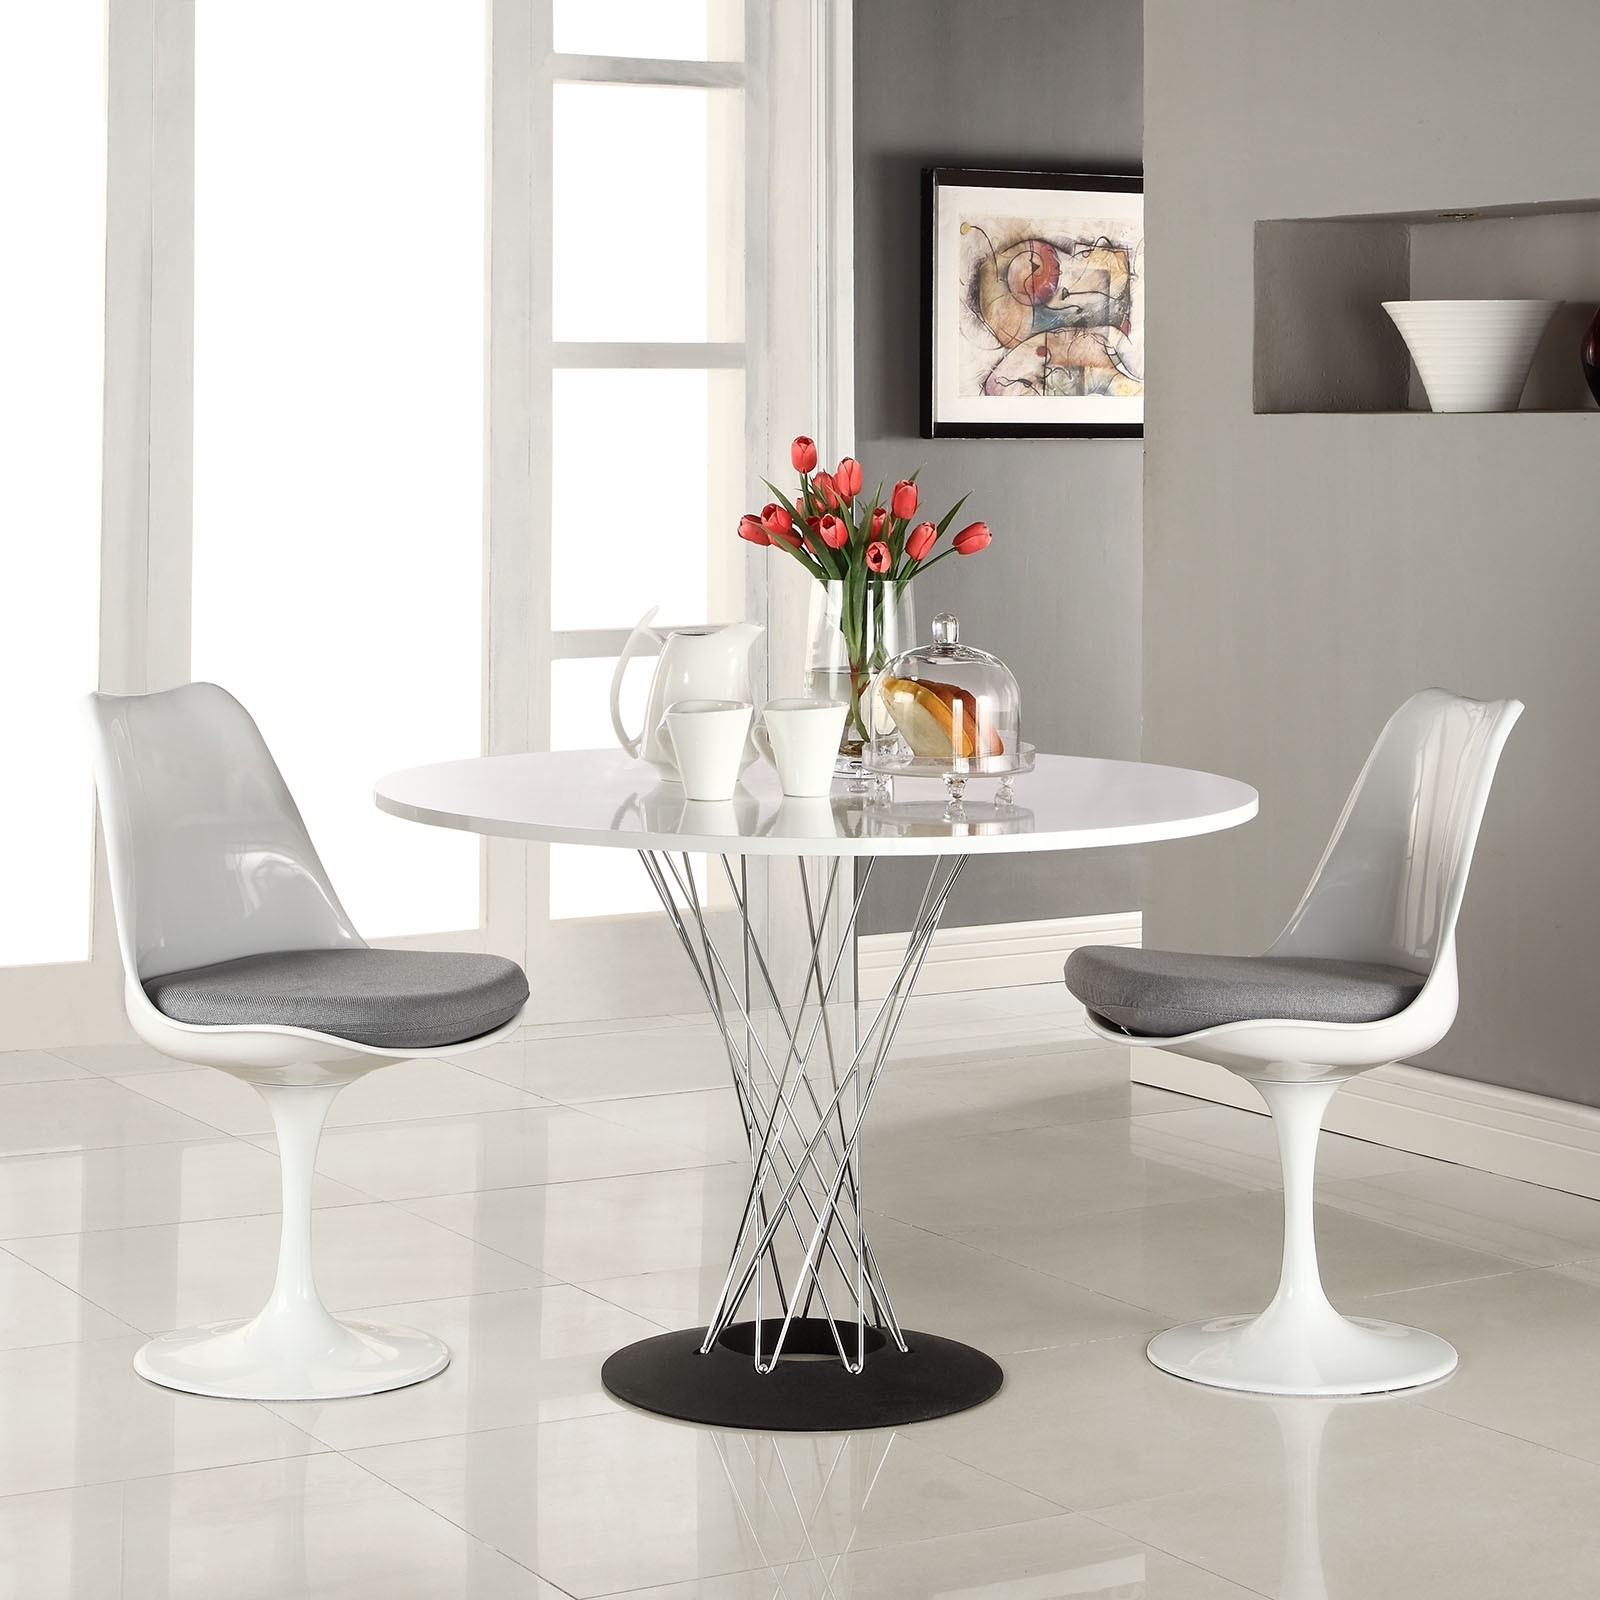 Acrylic Kitchen Table Fresh 15 White Round Table Design Ideas For Within 2017 Round Acrylic Dining Tables (View 6 of 25)